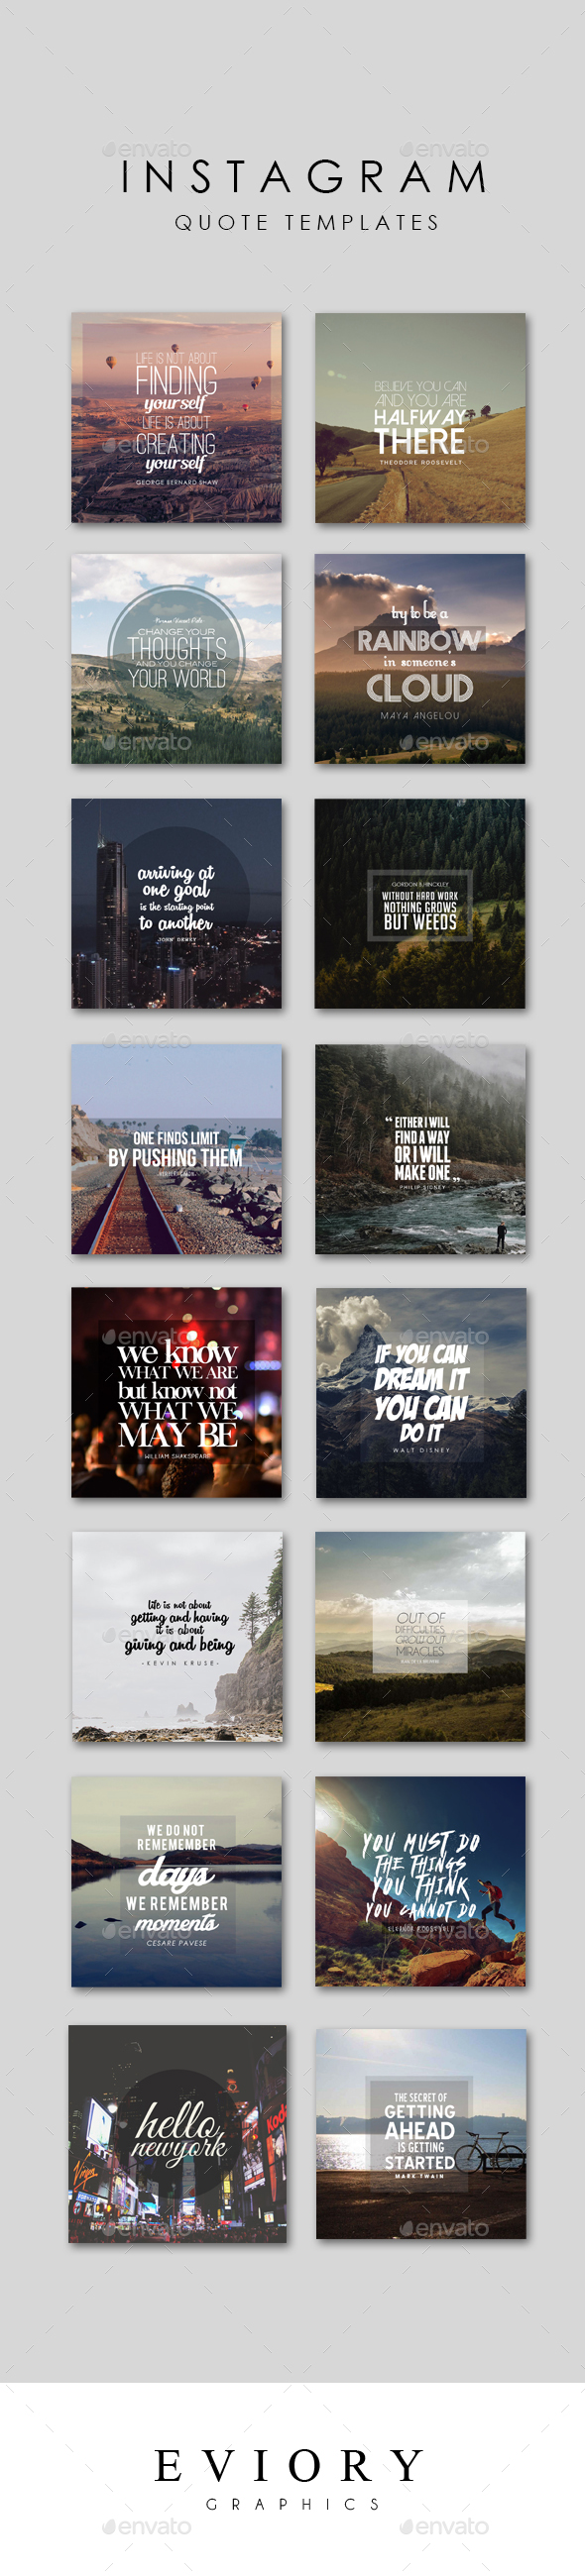 Instagram Quote Templates